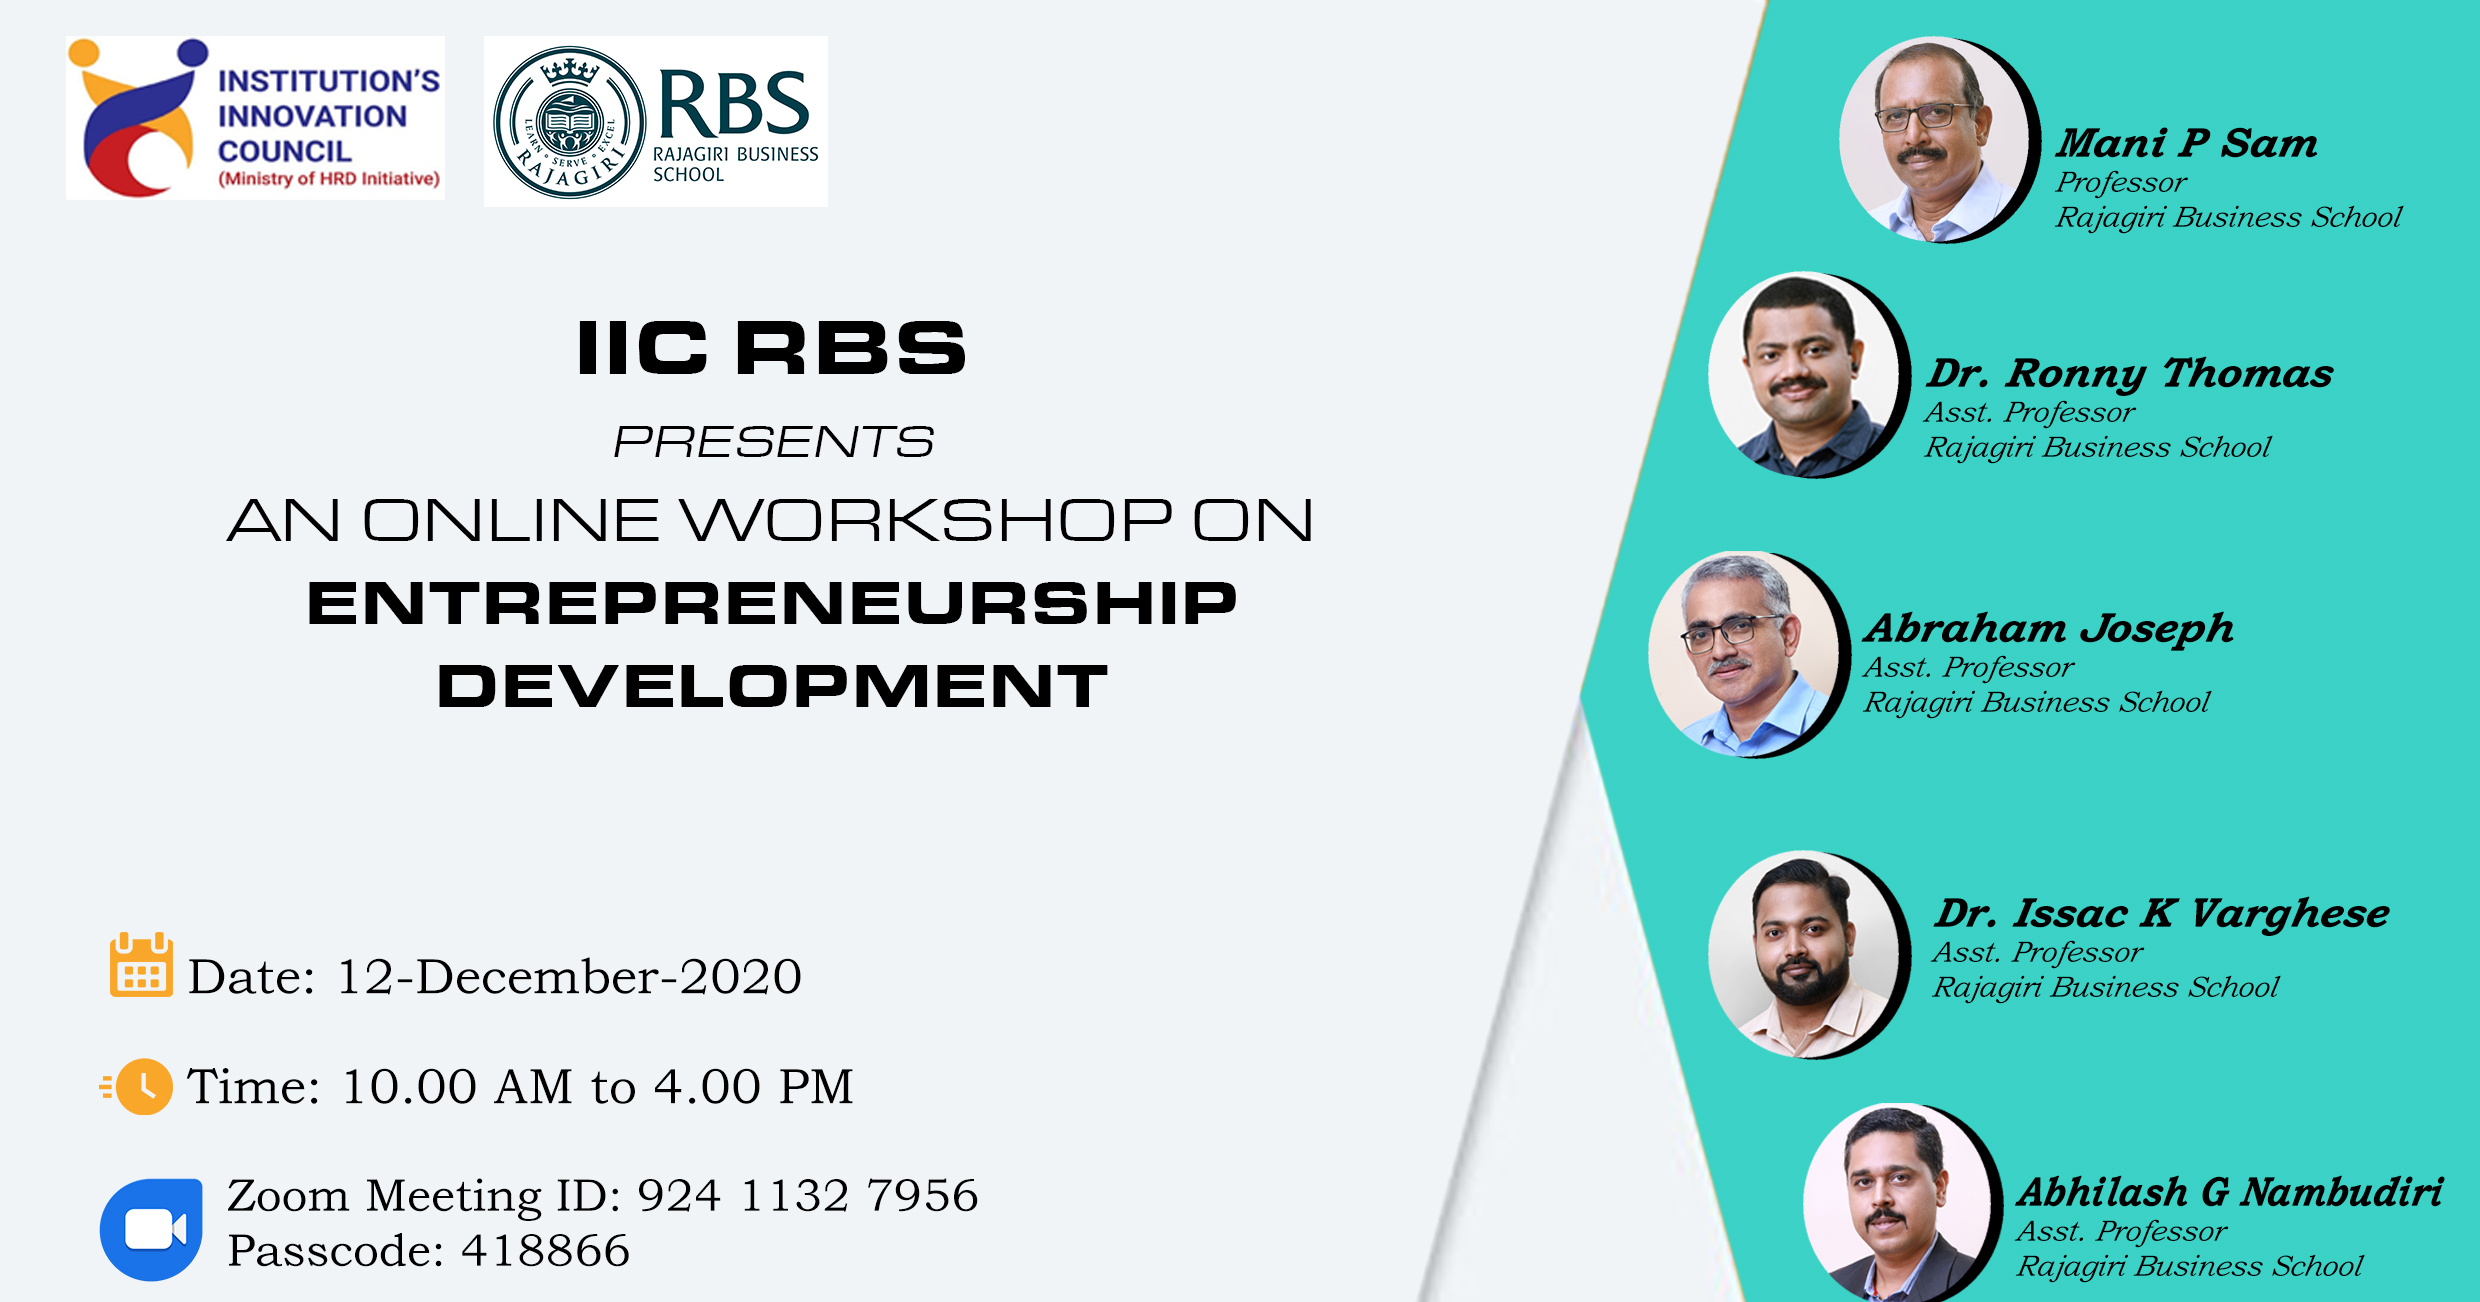 IIC RBS: An Online Workshop on Entrepreneurship Development